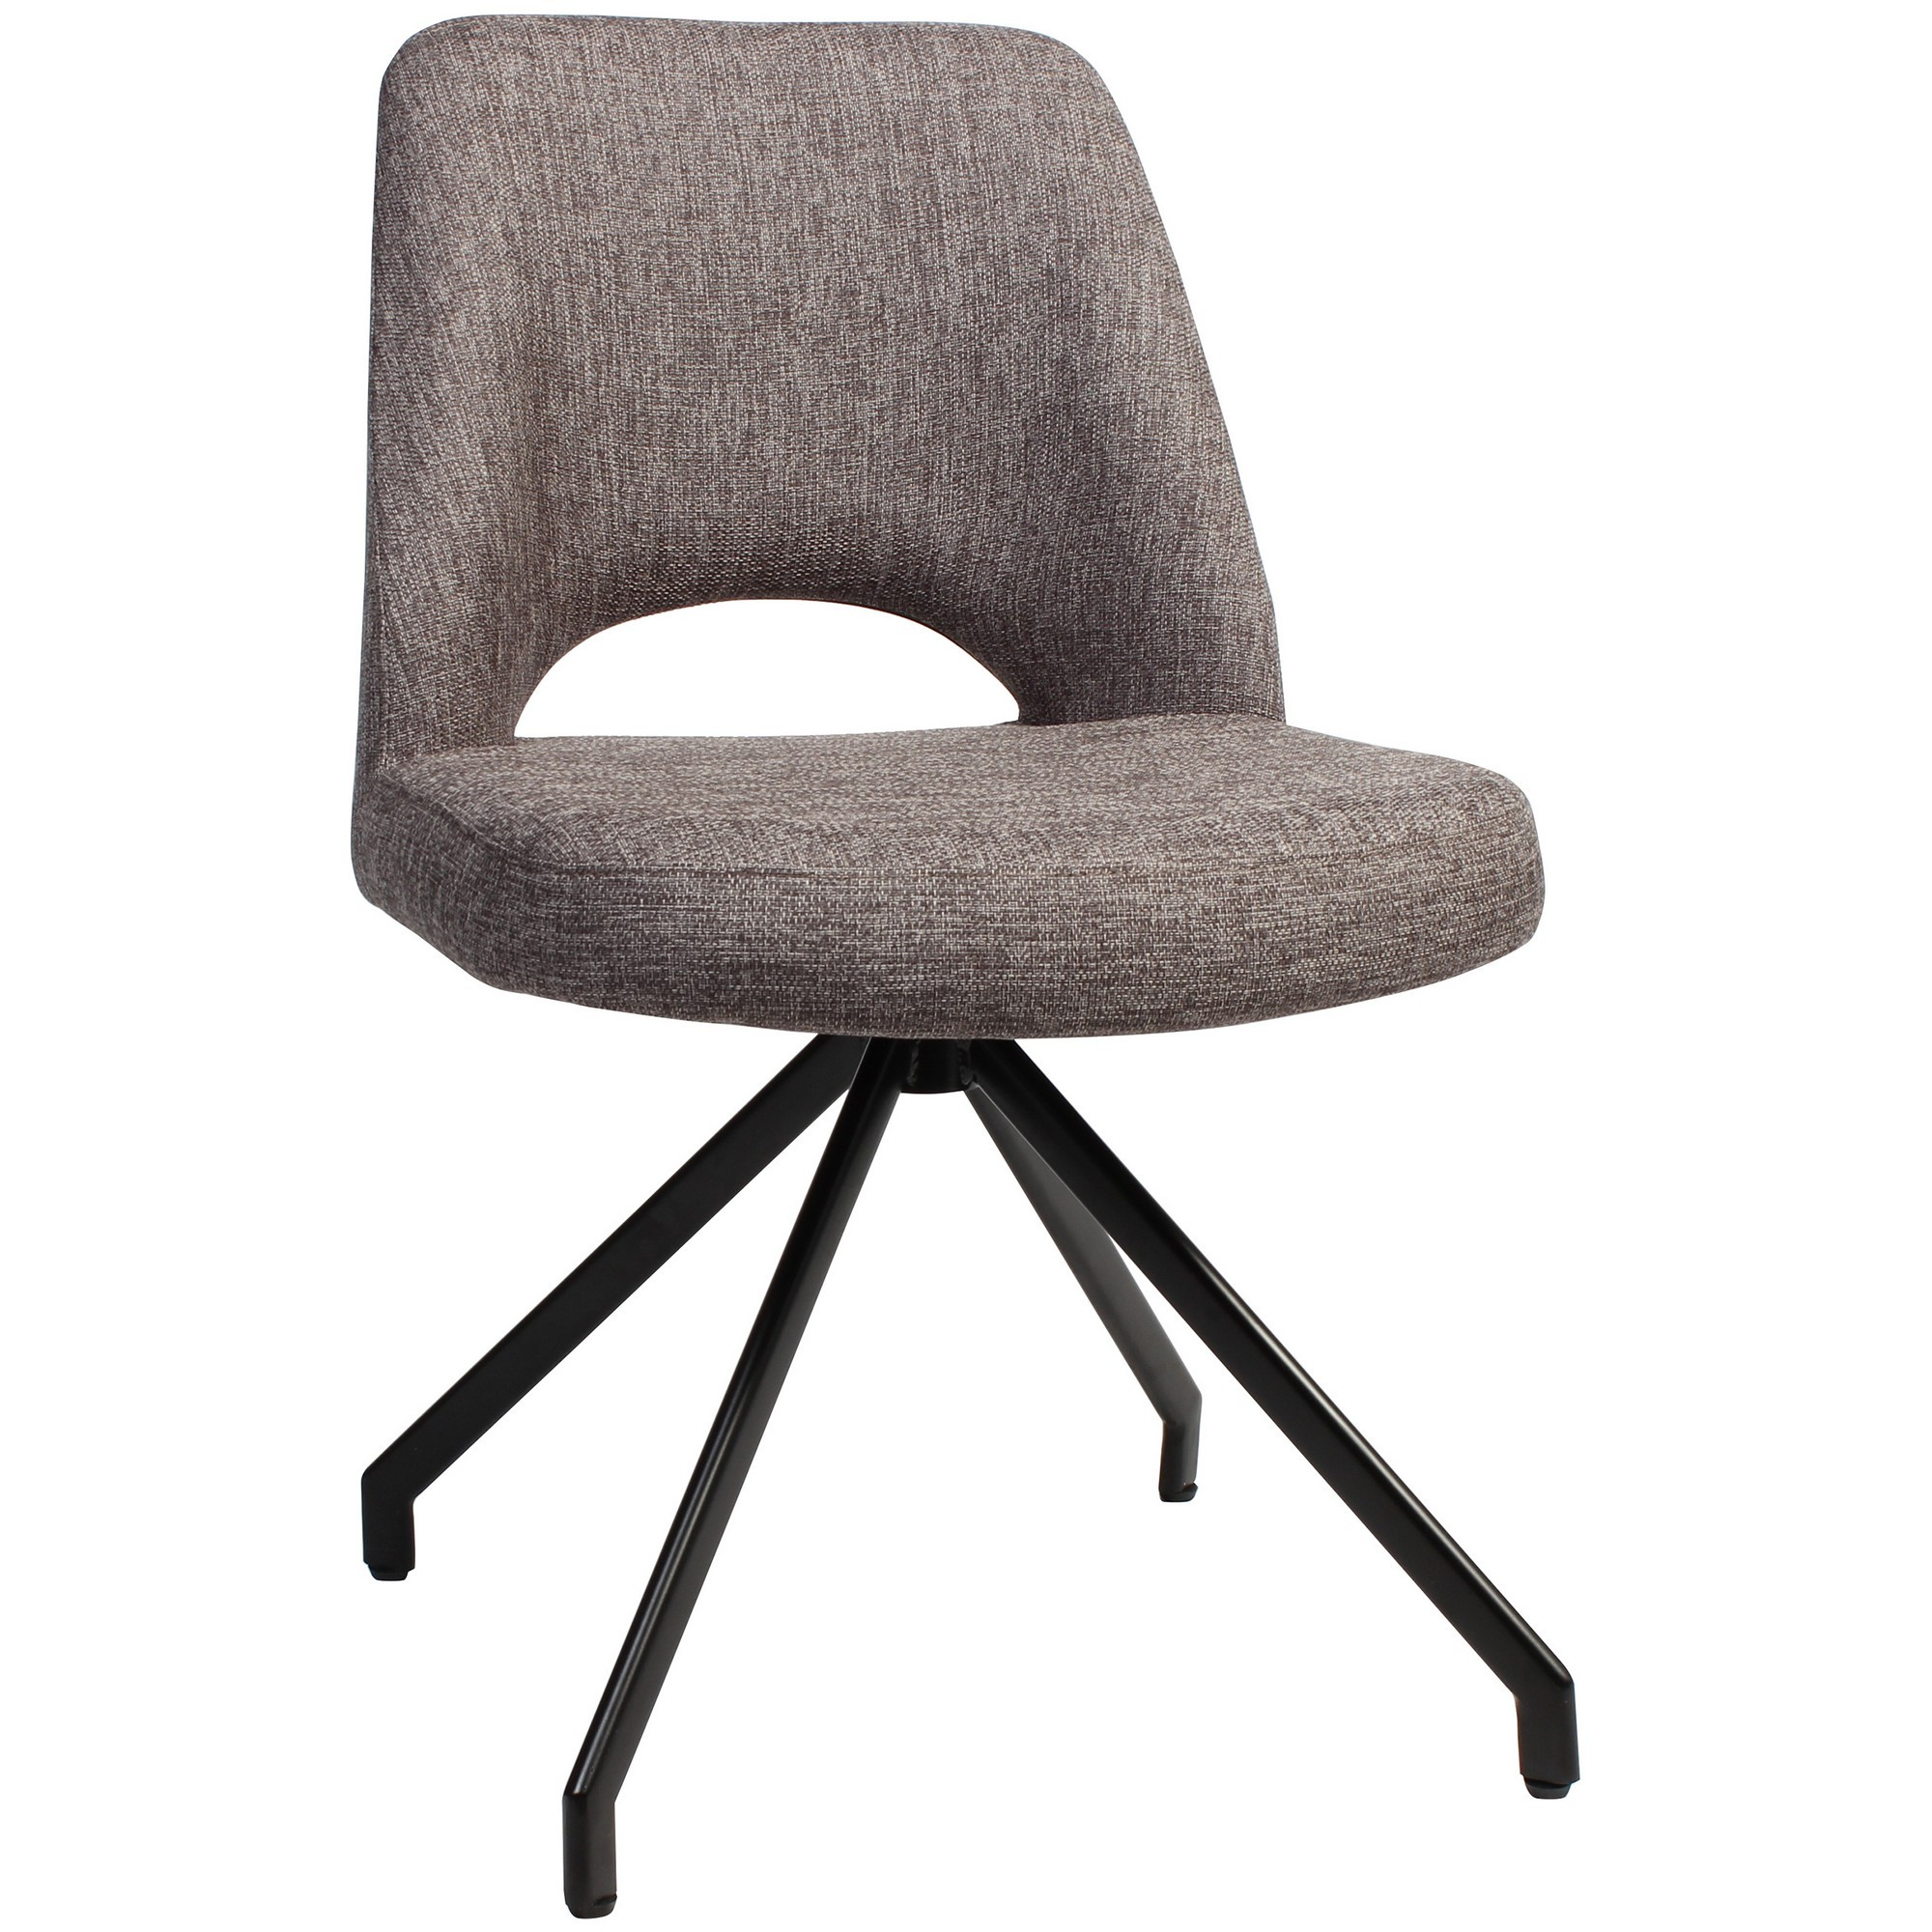 Albury Commercial Grade Fabric Dining Chair, Metal Trestle Leg, Ash Grey / Black